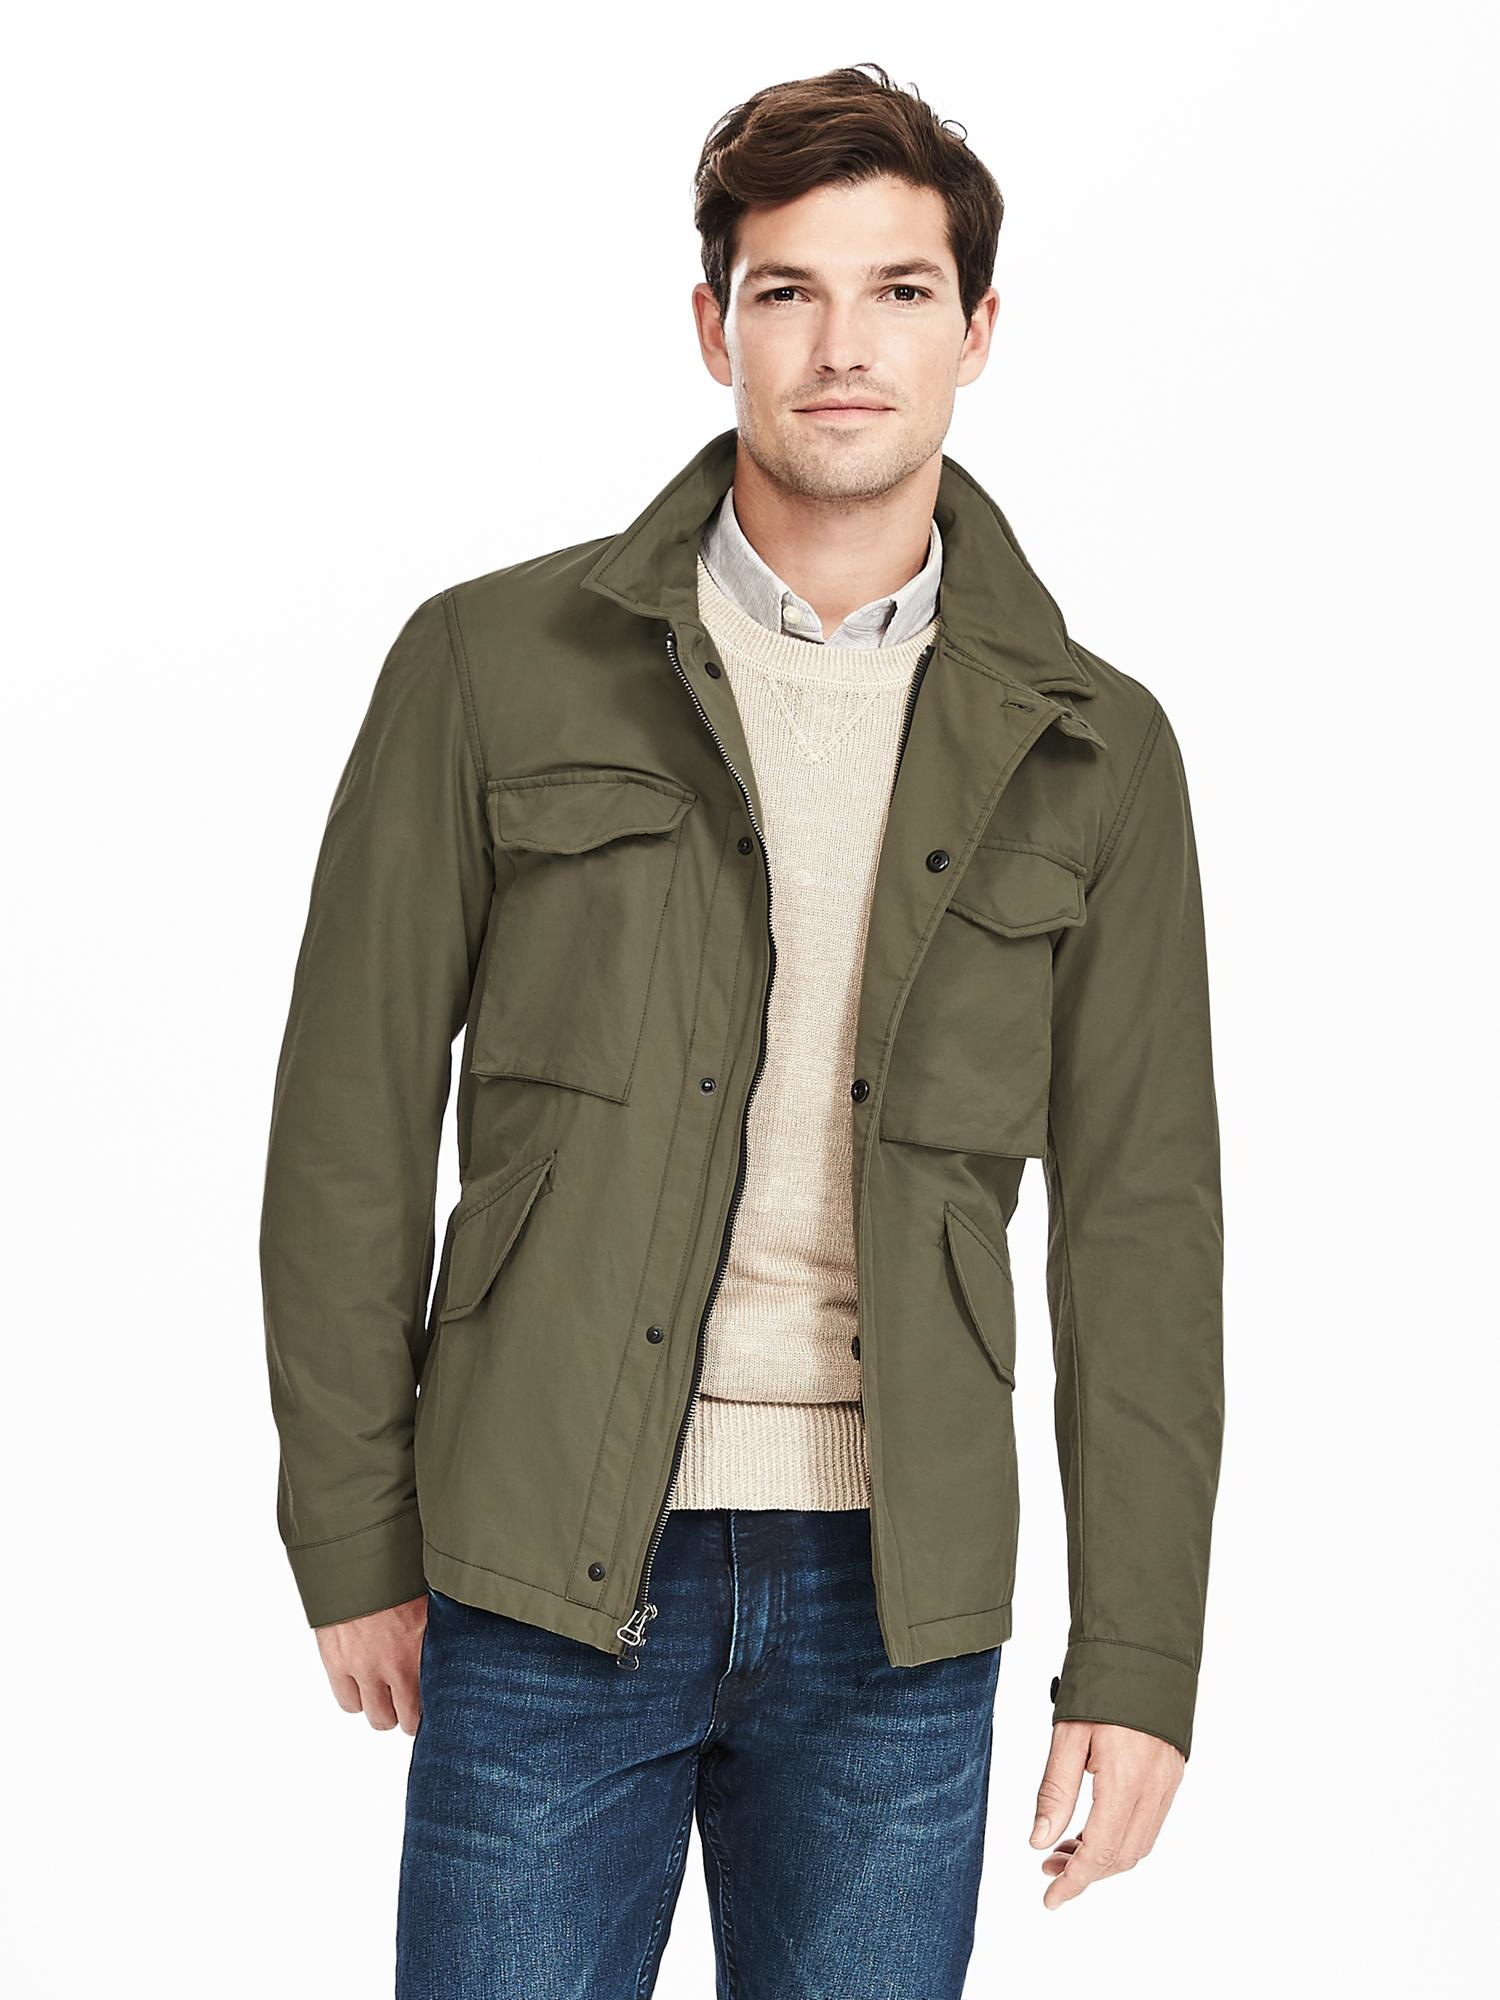 Upgrade your look with the men's outerwear - coats & jackets line by Banana Republic. Shop men's coats & jackets today.